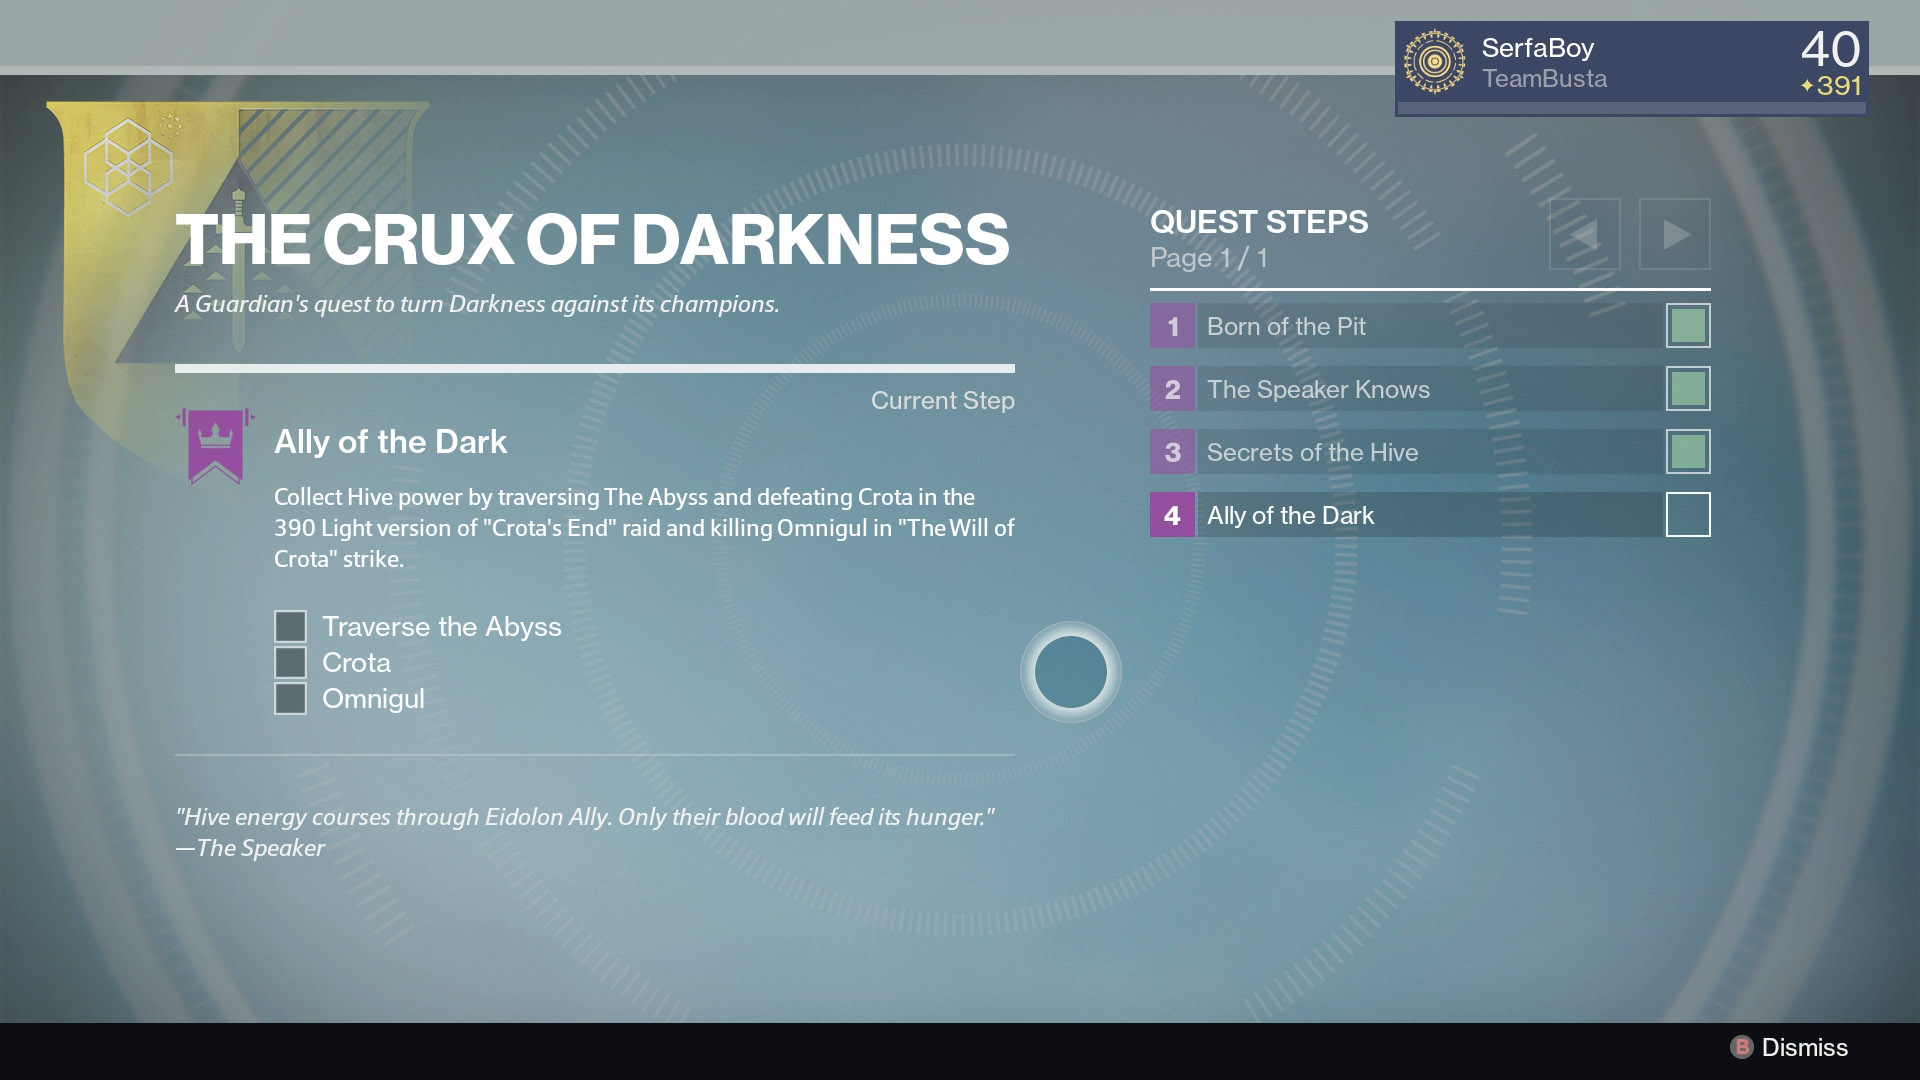 Complete the 390 Crota's End raid and kill Omnigul to receive the Essence of the Oversoul, the final piece to unlocking the Necrochasm.